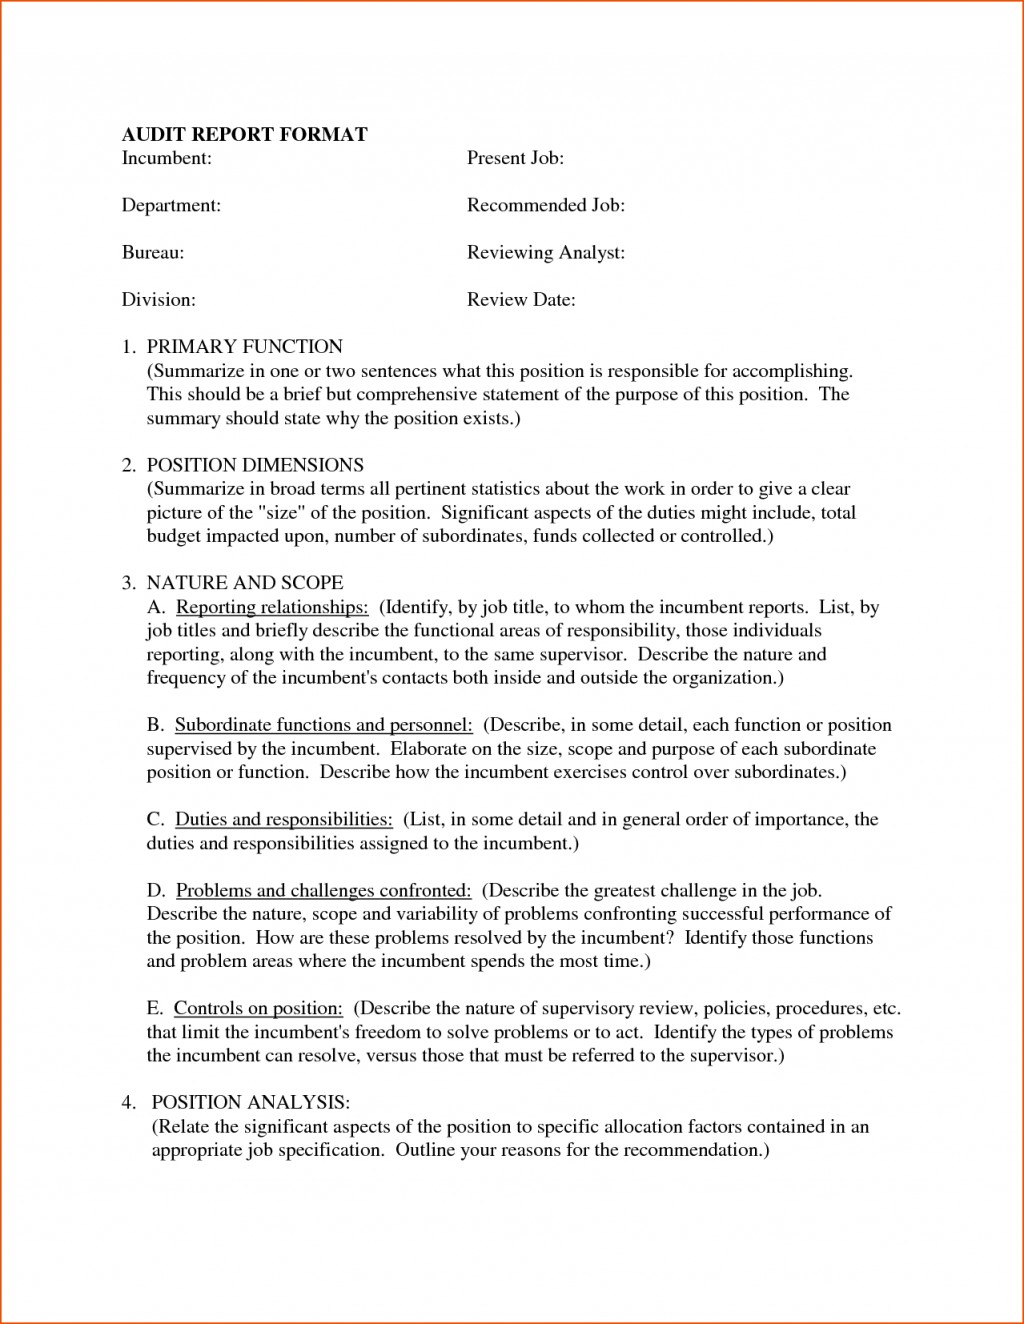 010 Business Report Format I0 Which List Best Describes The Organization Of An Argumentative Essay Fearsome Brainly Large